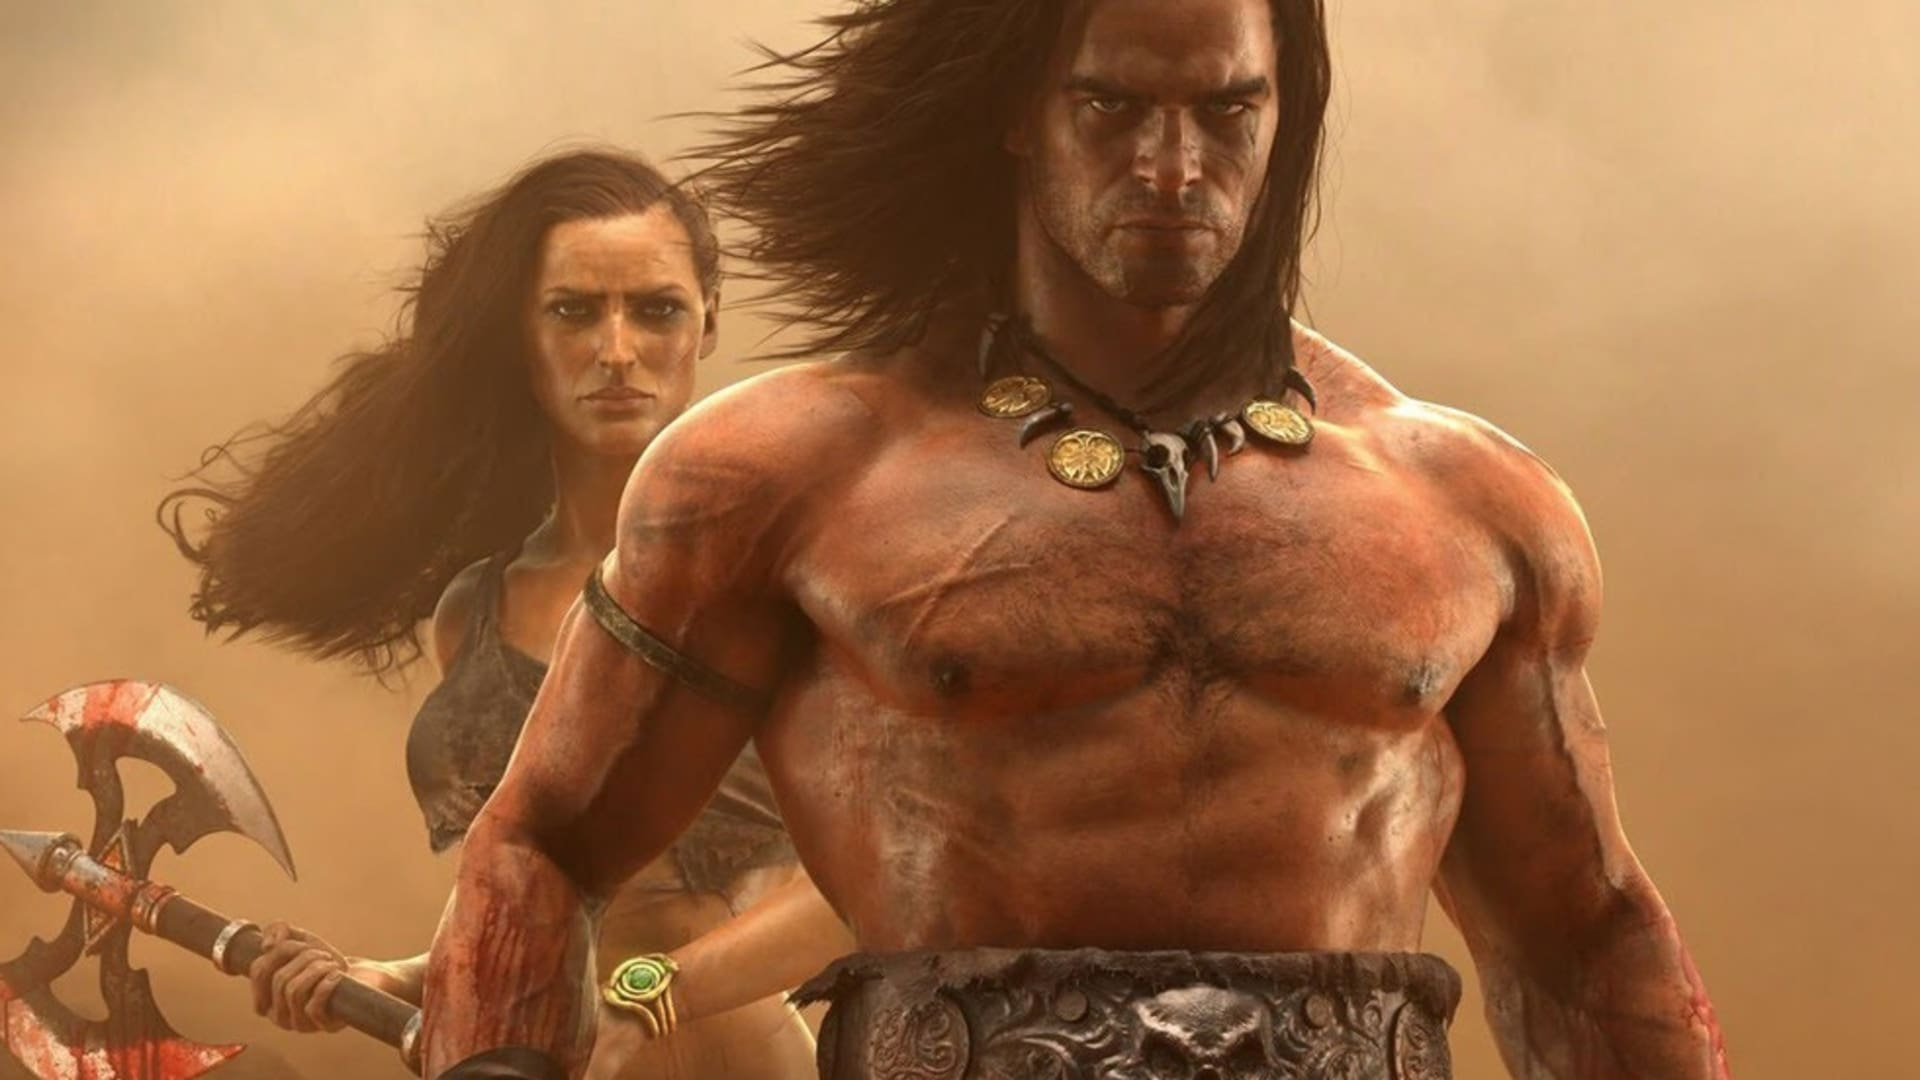 Conan Exiles i early access idag